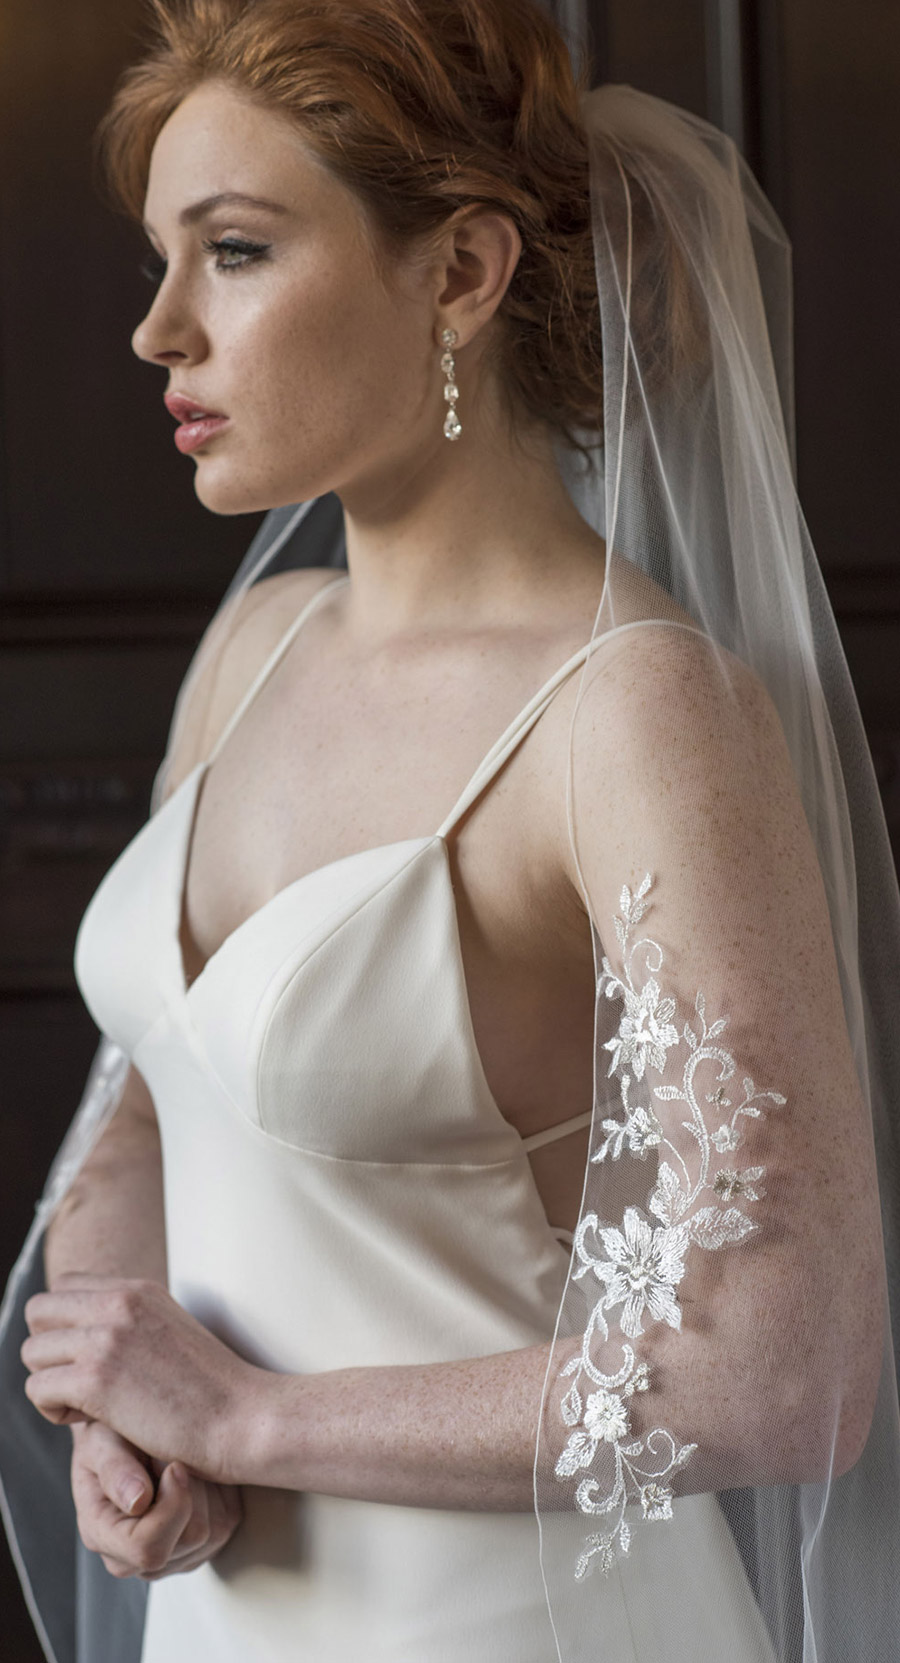 bel aire bridal accessories 1 tier waltz length veil schiffli lace appliques 7365 klk photography ebell wedding shoot mv